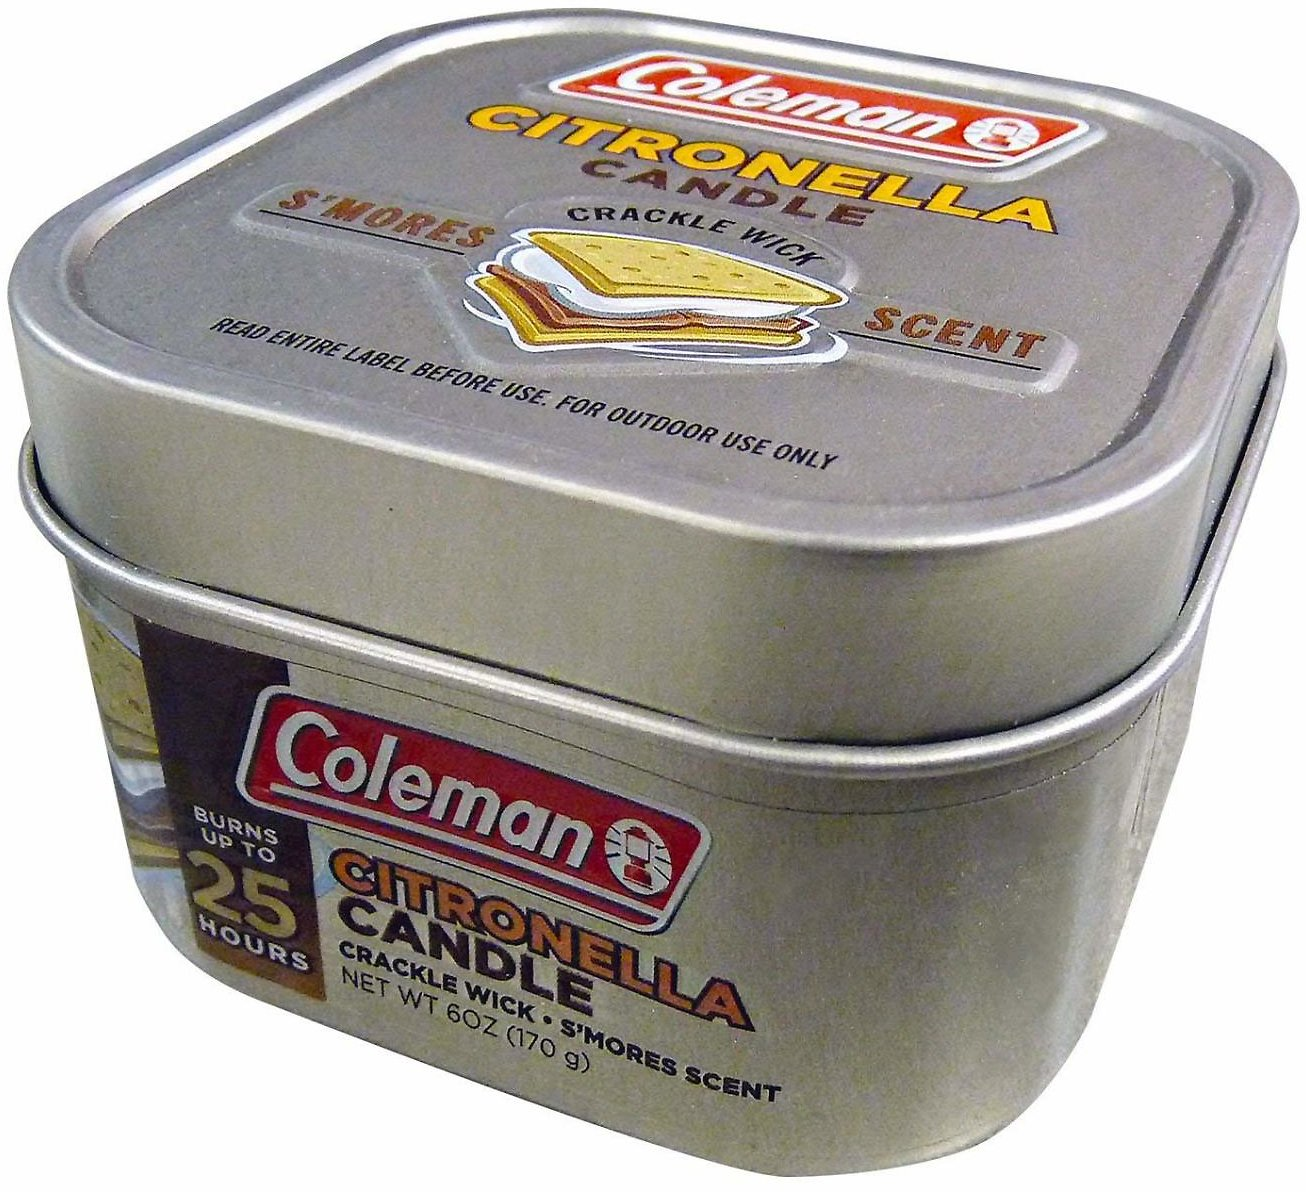 Coleman Scented Citronella Candle w/Crackle Wick 6oz Smores